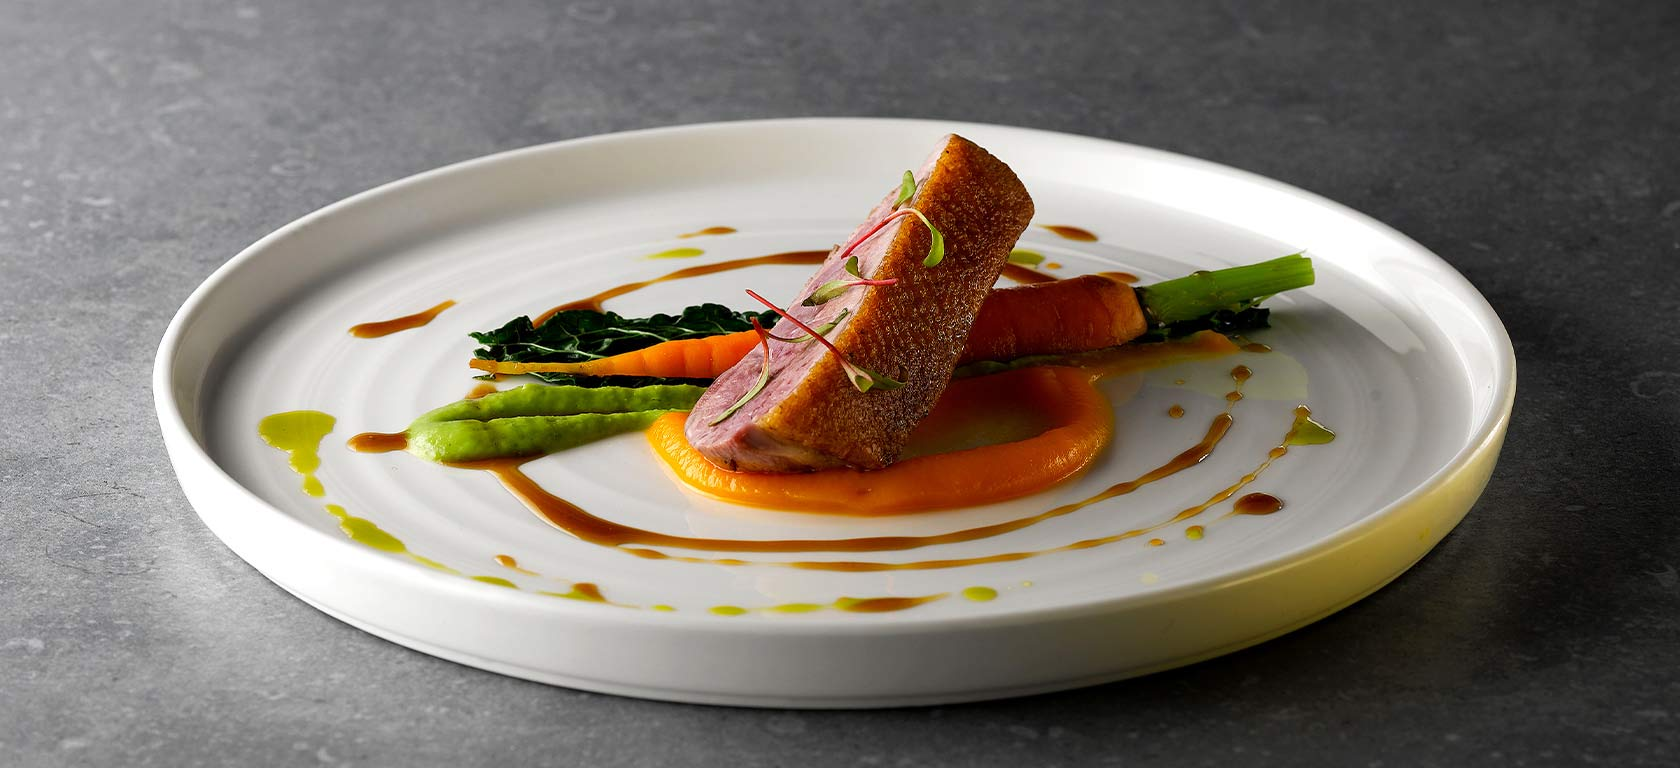 Tender salmon and asparagus plated delicately over an elegant white ceramic plate.